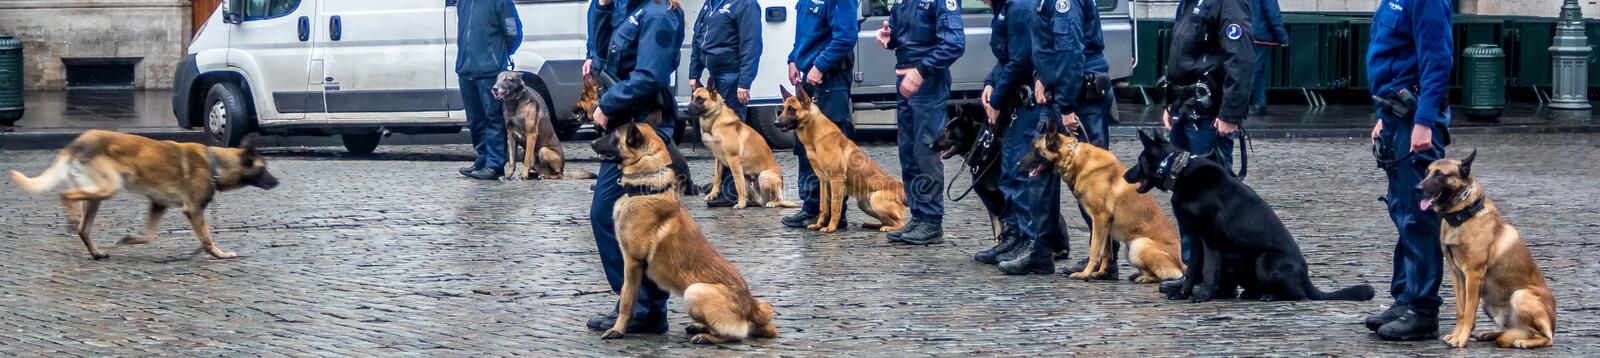 Dog lecture, training. Show and tell. Brussels guards. royalty free stock photo